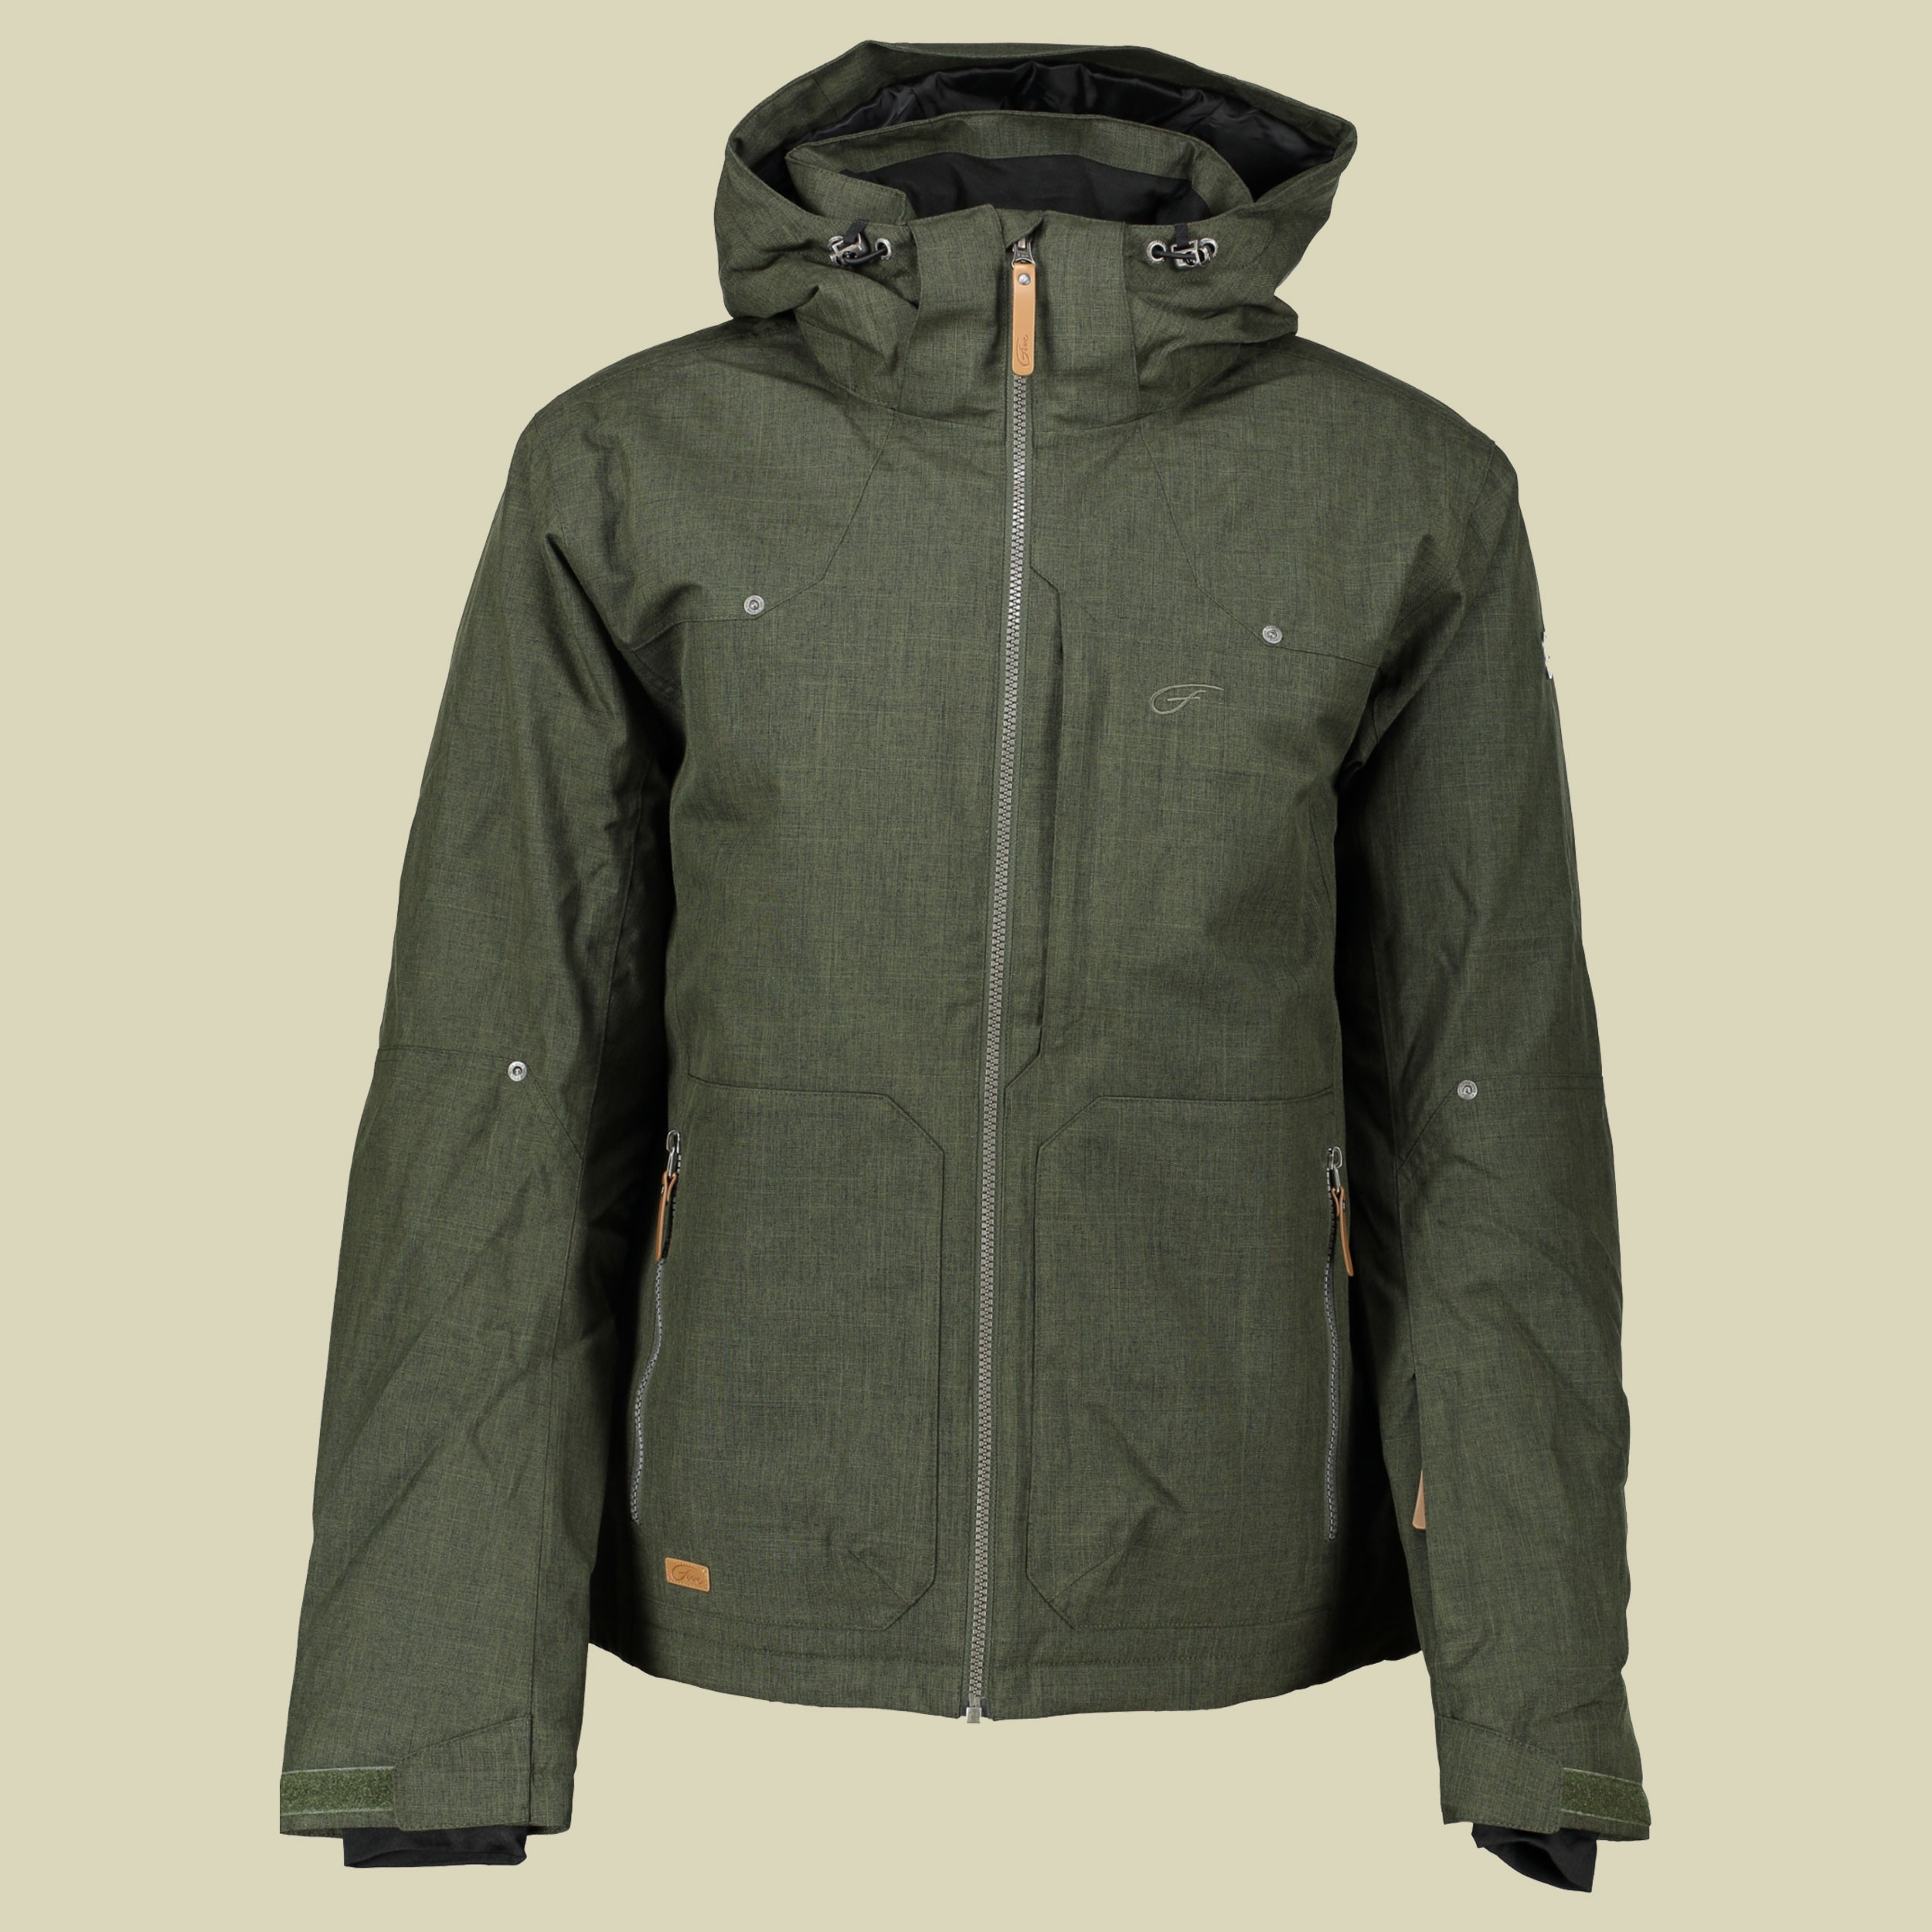 Affe Jacket Men